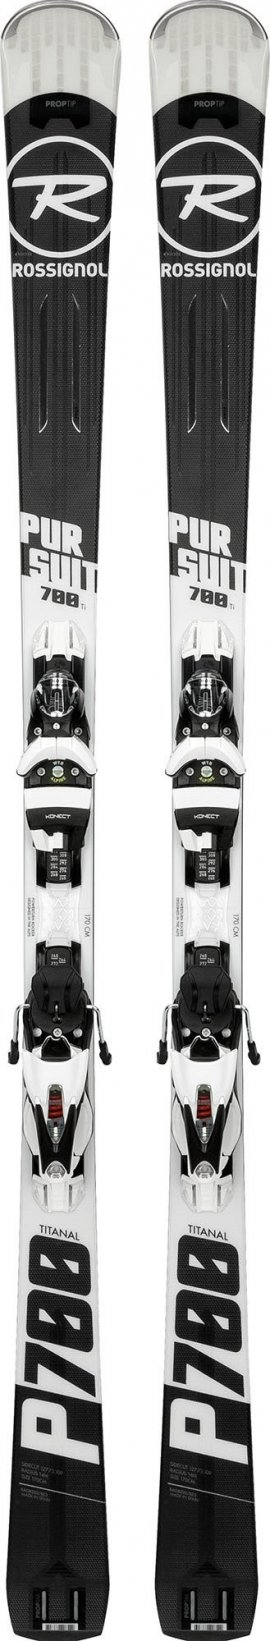 ROSSIGNOL PURSUIT 700 TI  17/18